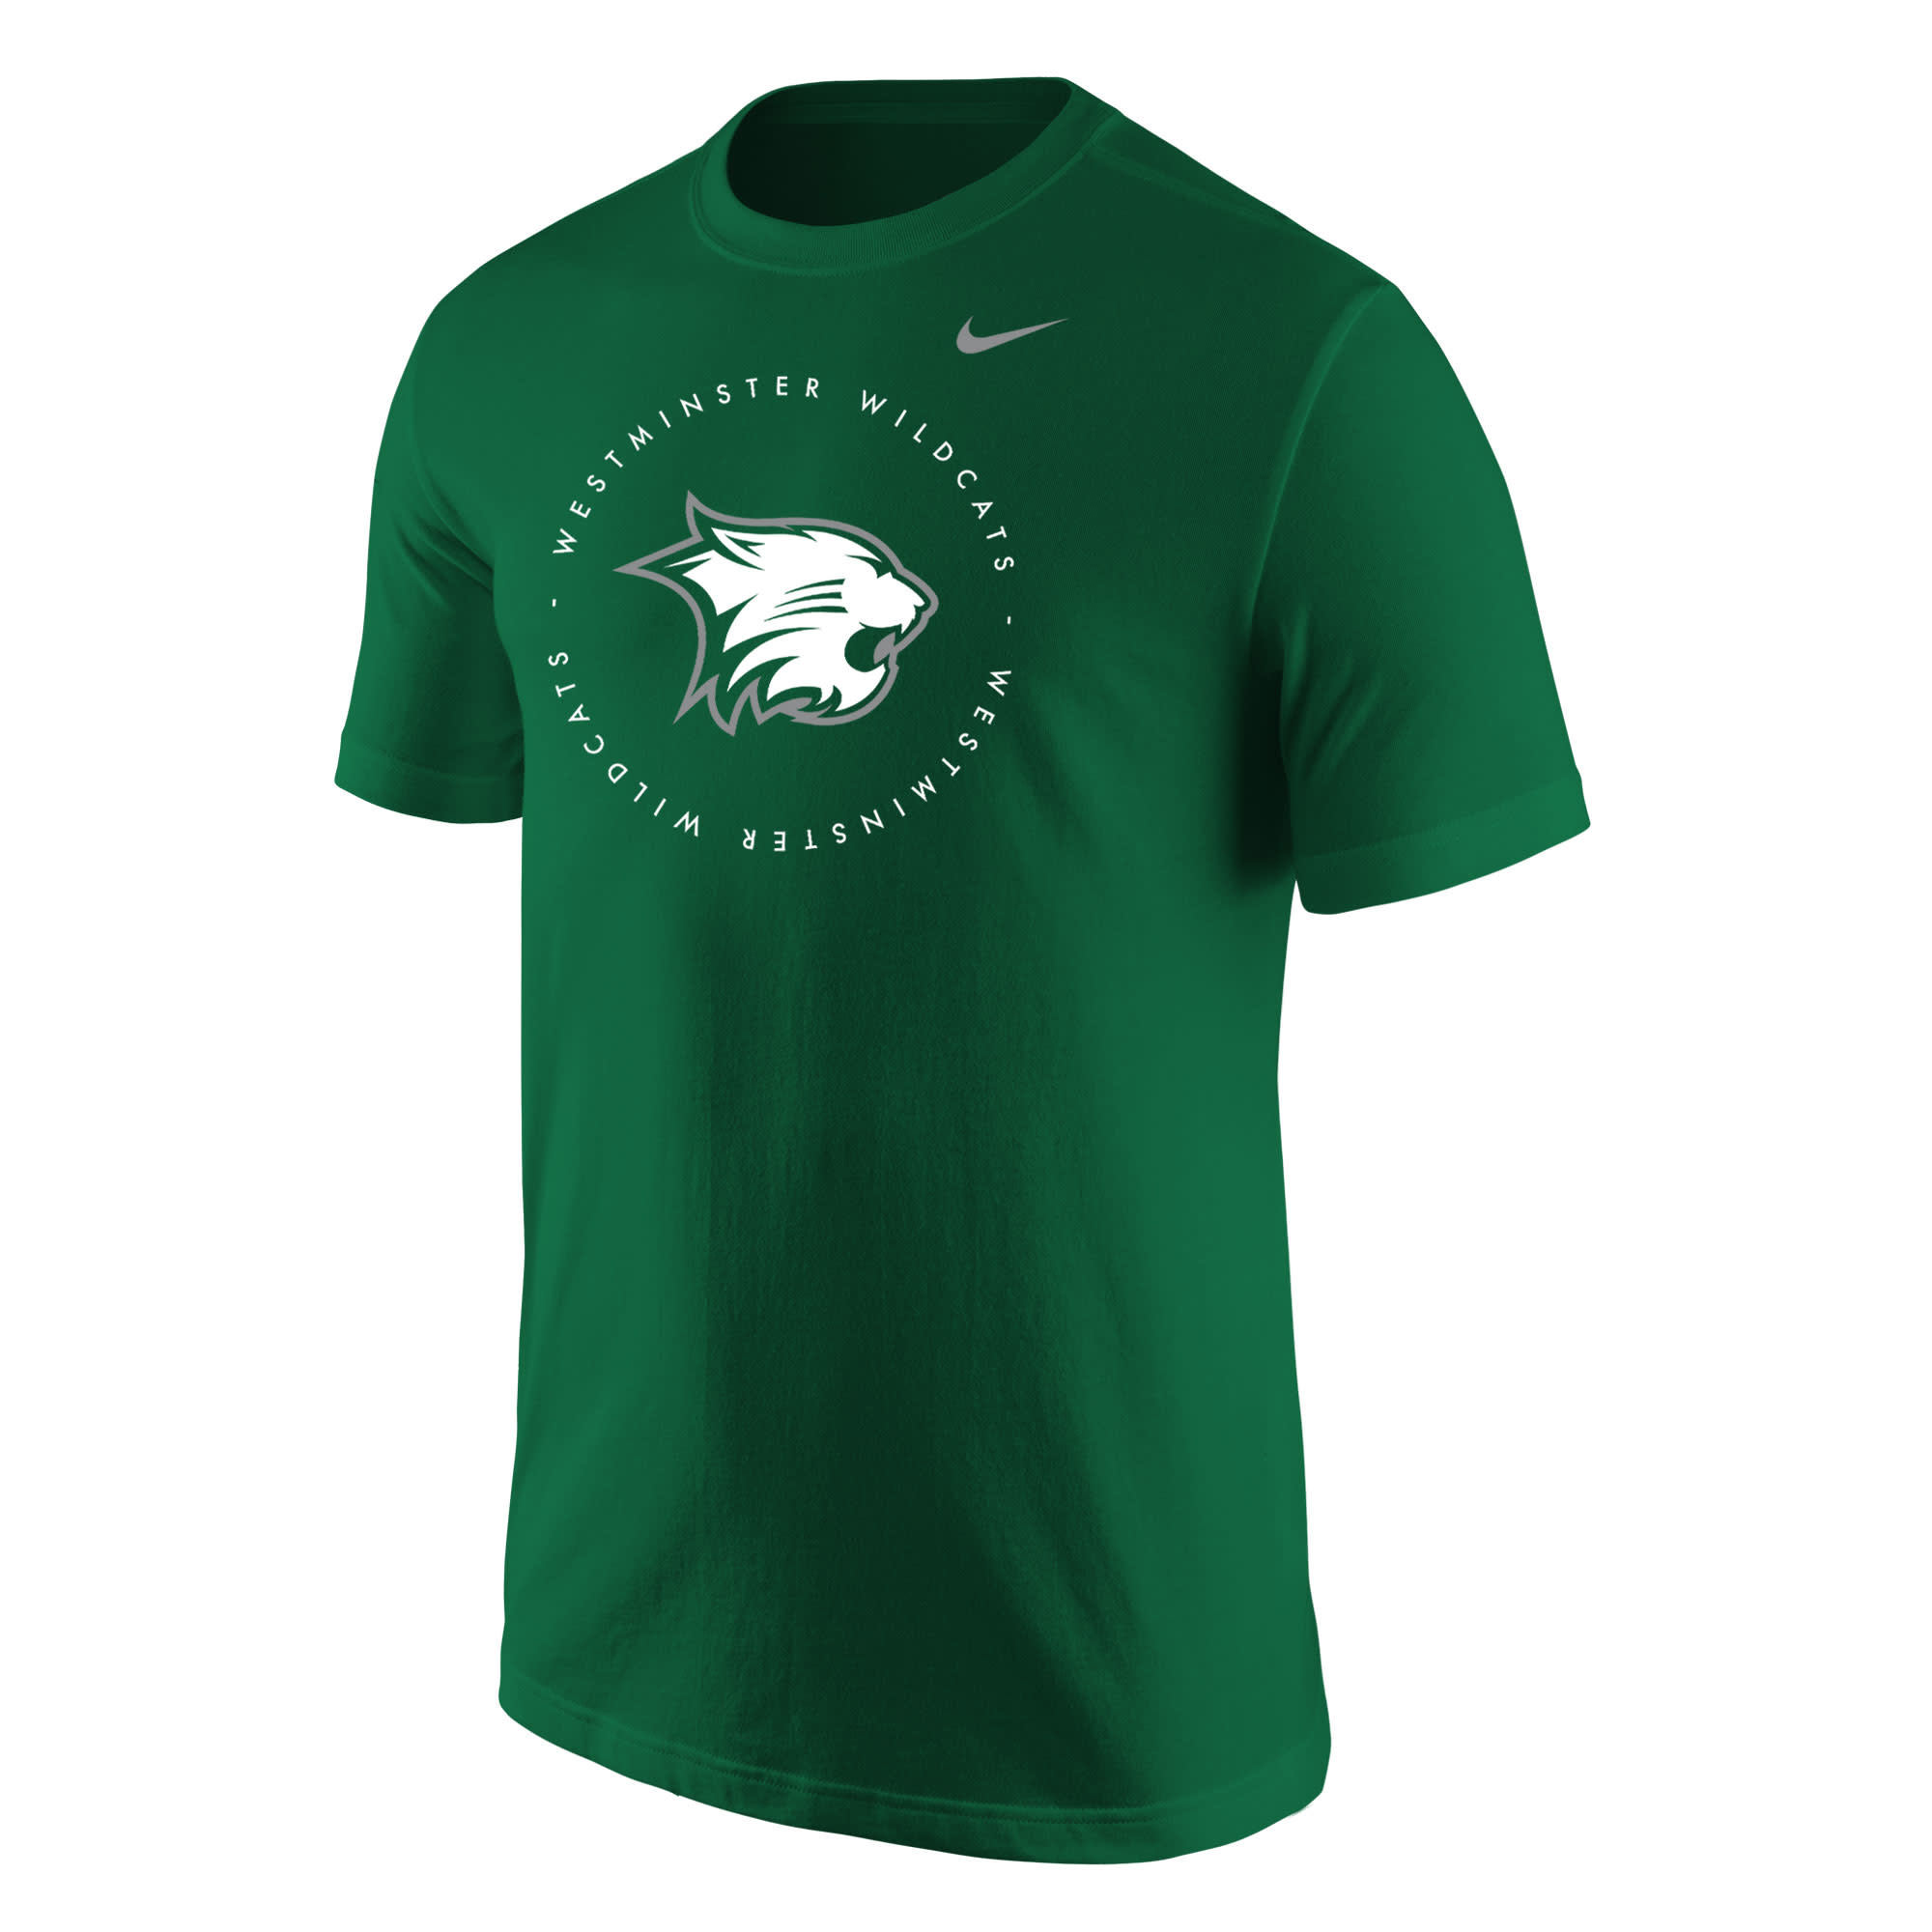 Nike T: Nike Core SS Green with Cathead & Westminster Wilcats in Circular Pattern